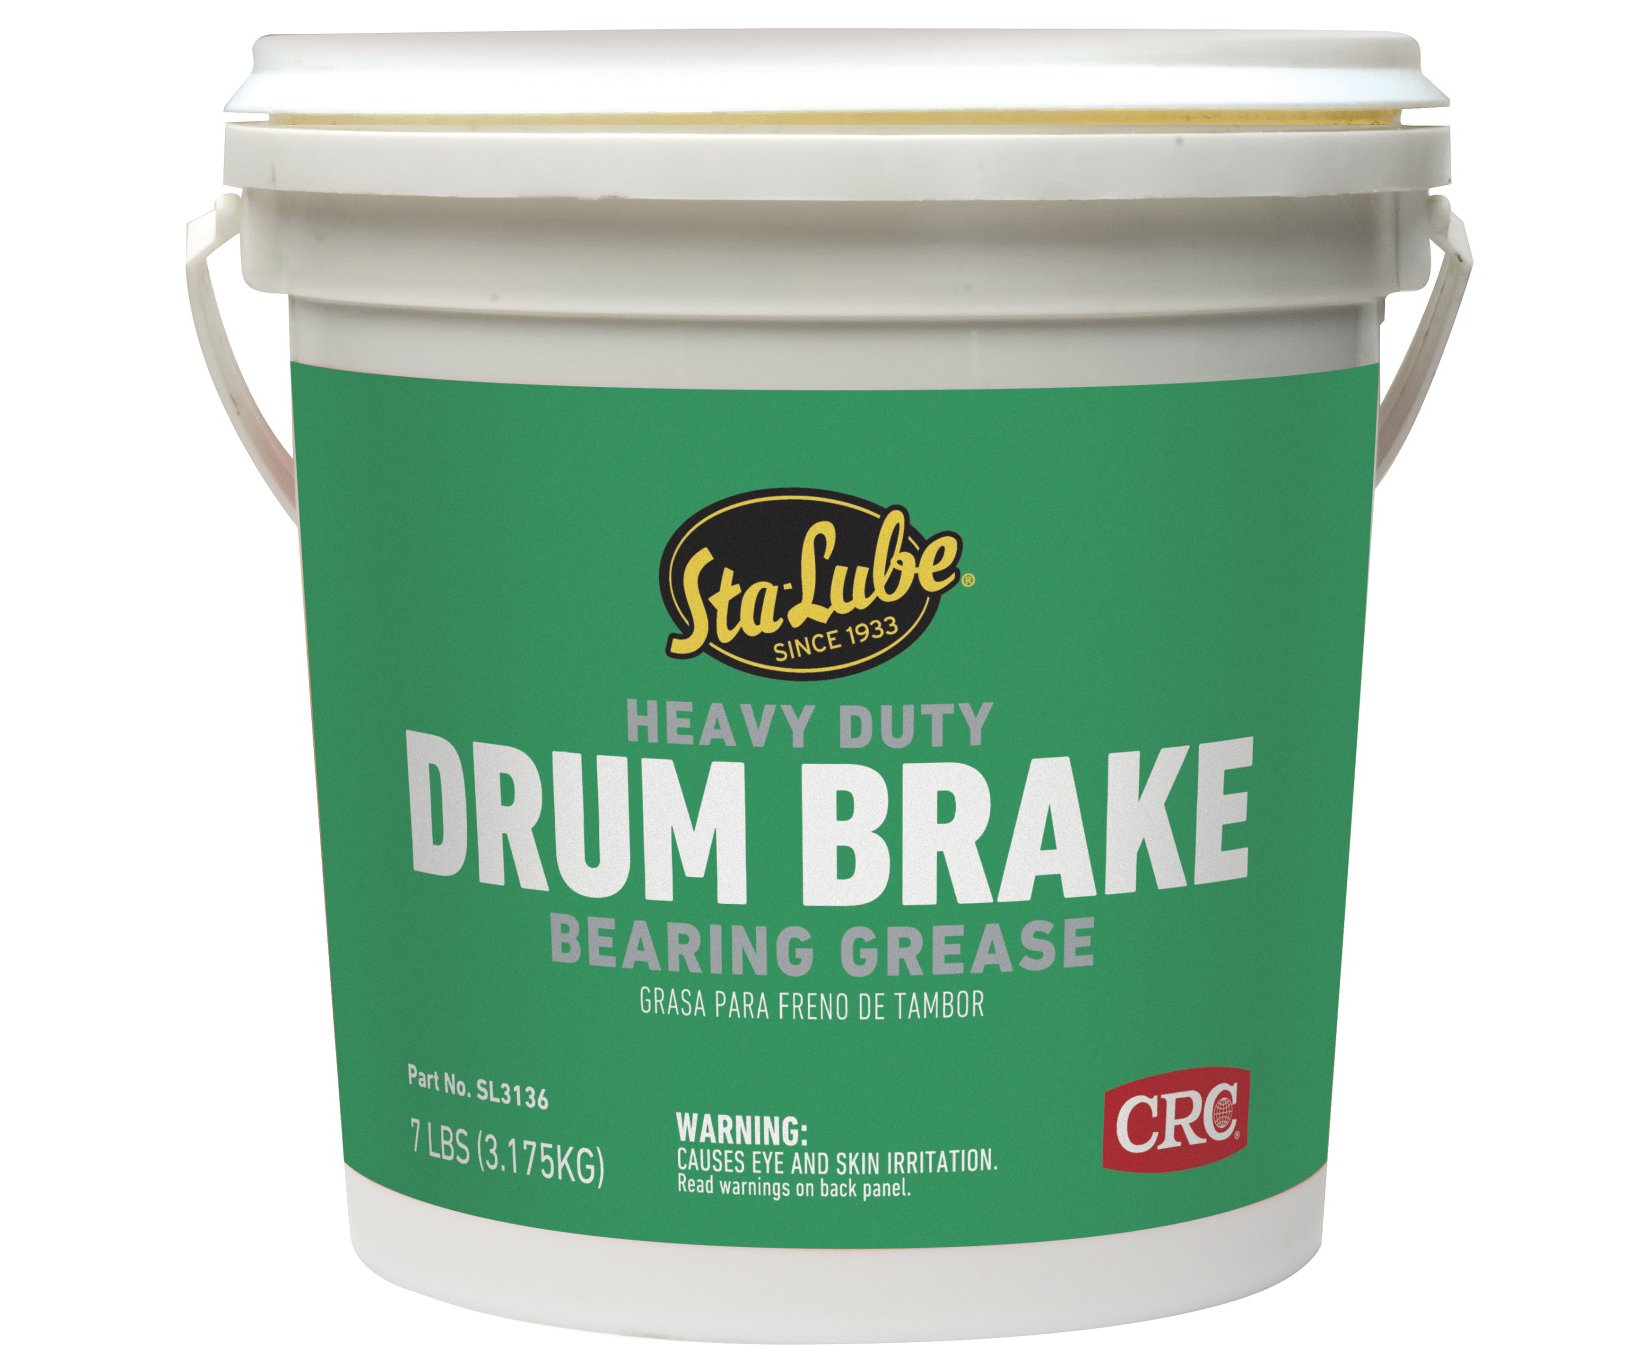 Sta-Lube SL3136 Heavy Duty Drum Brake Wheel Bearing Grease, 7 lbs. by Sta-Lube